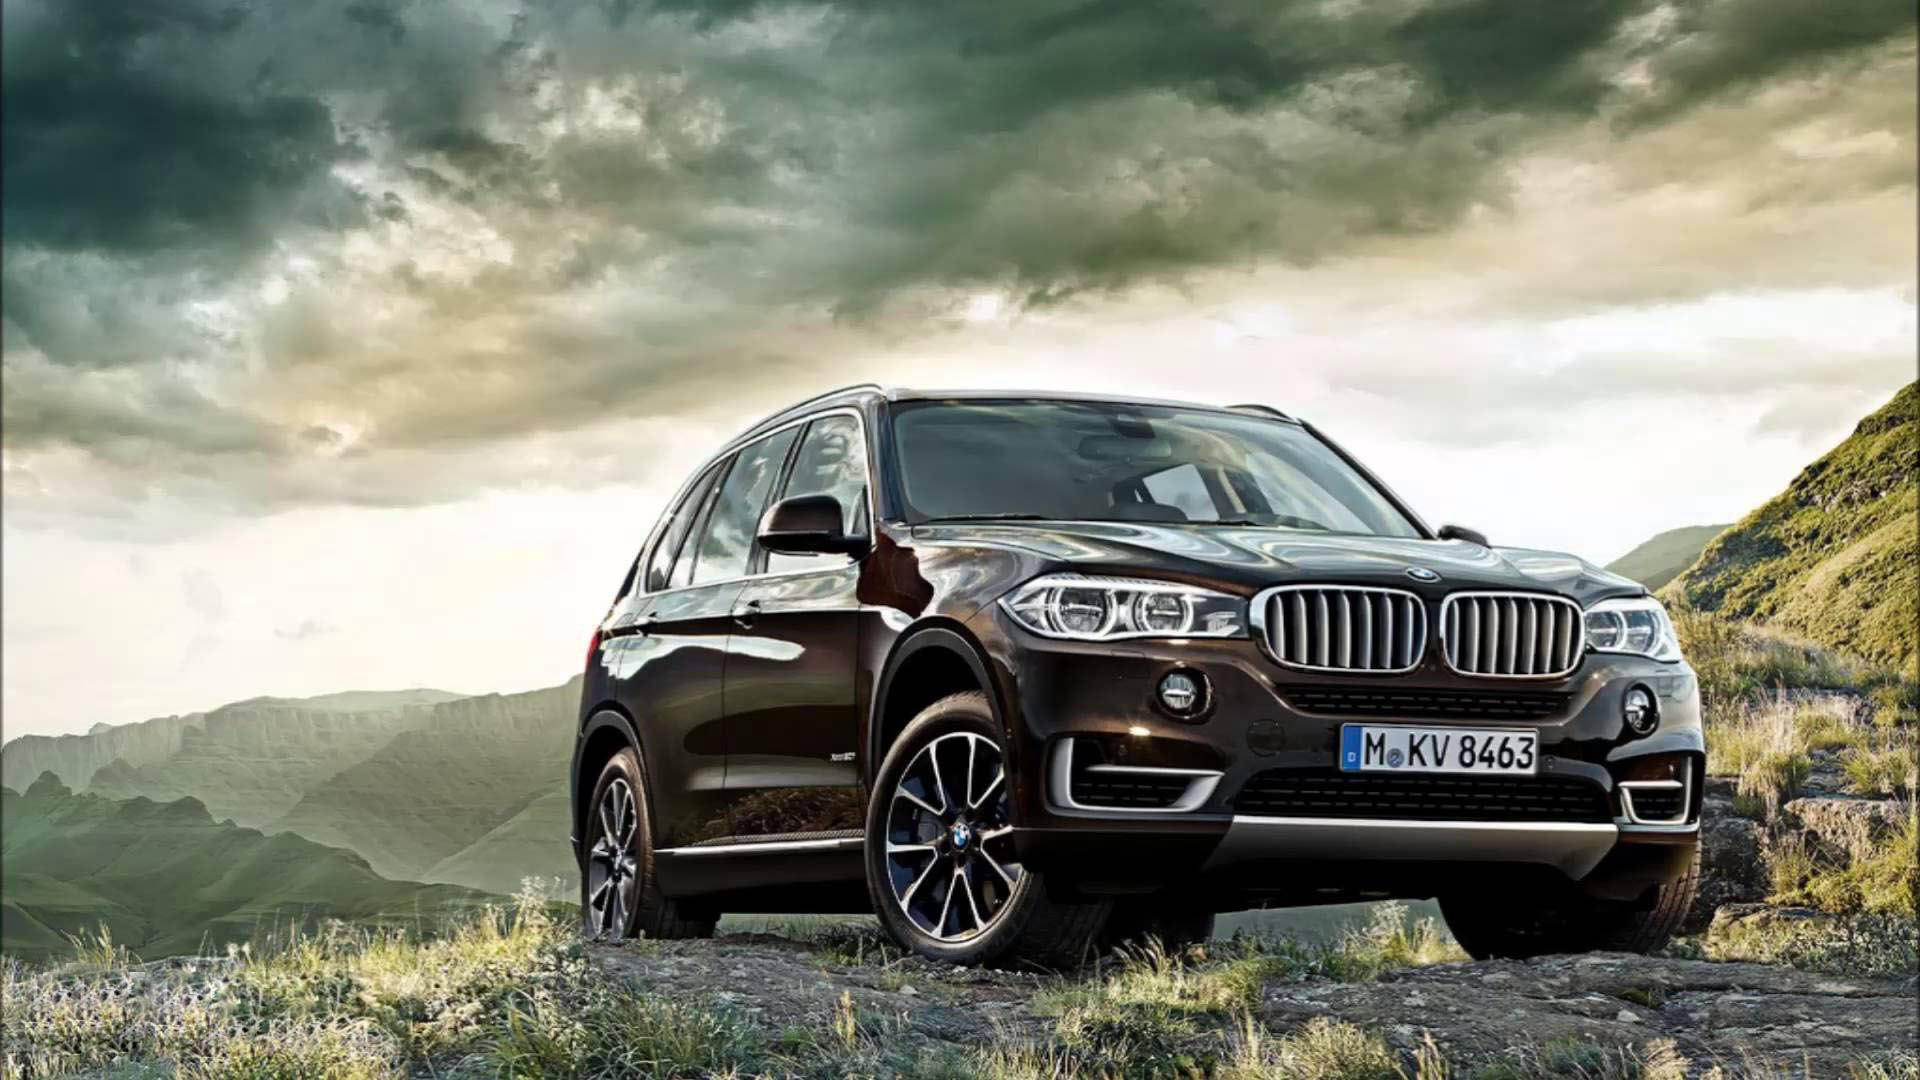 Bmw X5 M Mobile Phone Wallpapers 1920x1080